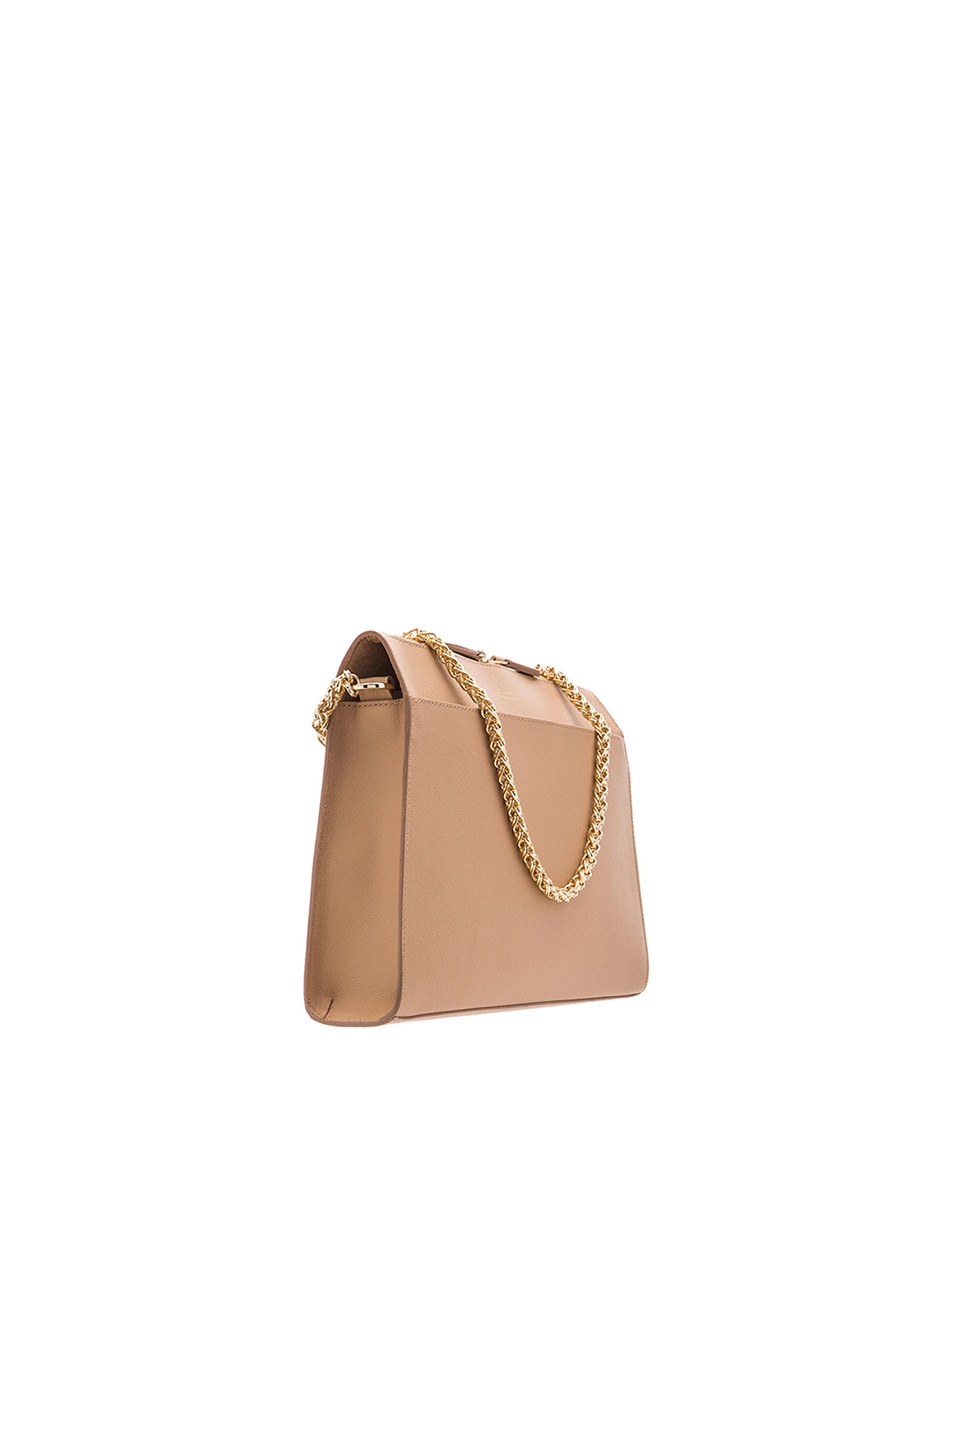 Image 4 of A.P.C. Edith Bag in Beige Rose